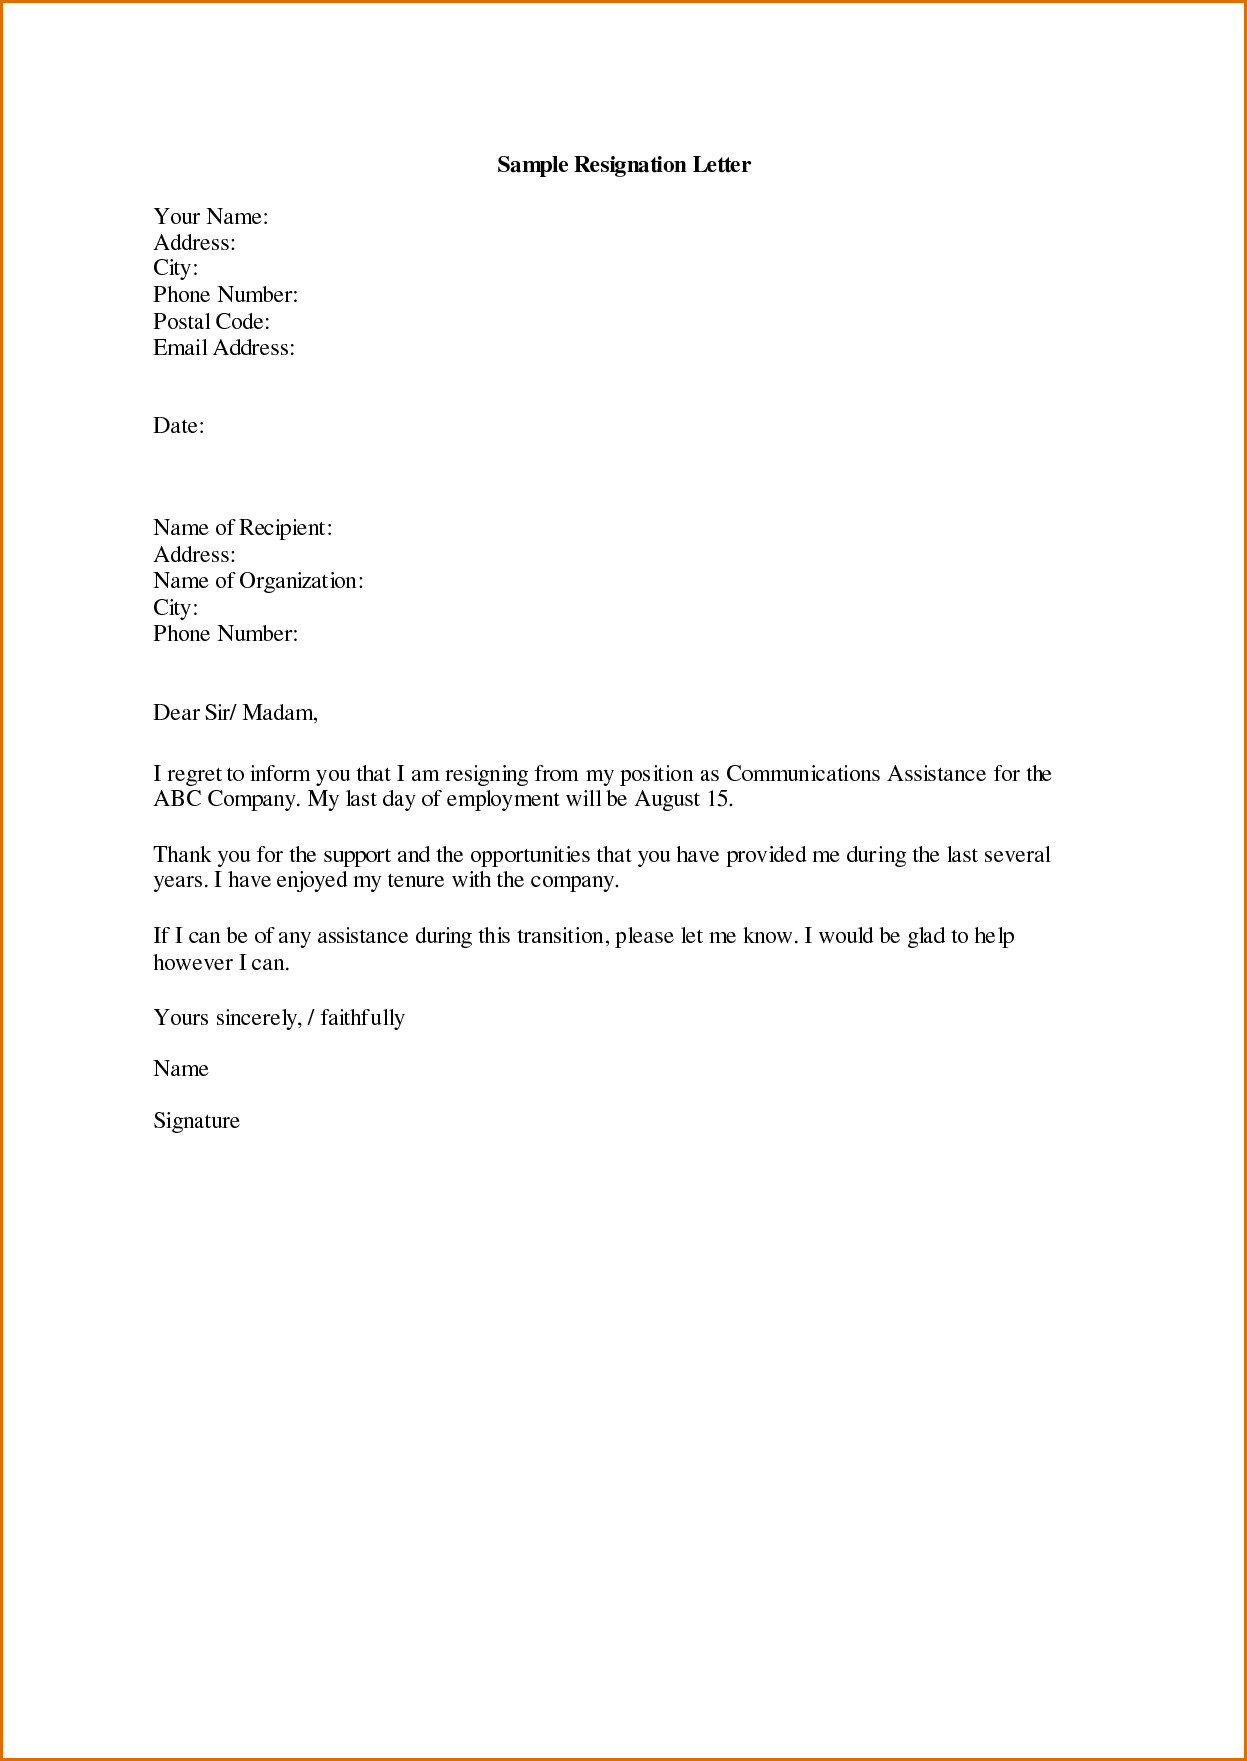 Letter Of Resignation Template Word Sample Displaying 16 Images for Letter Of Resignation